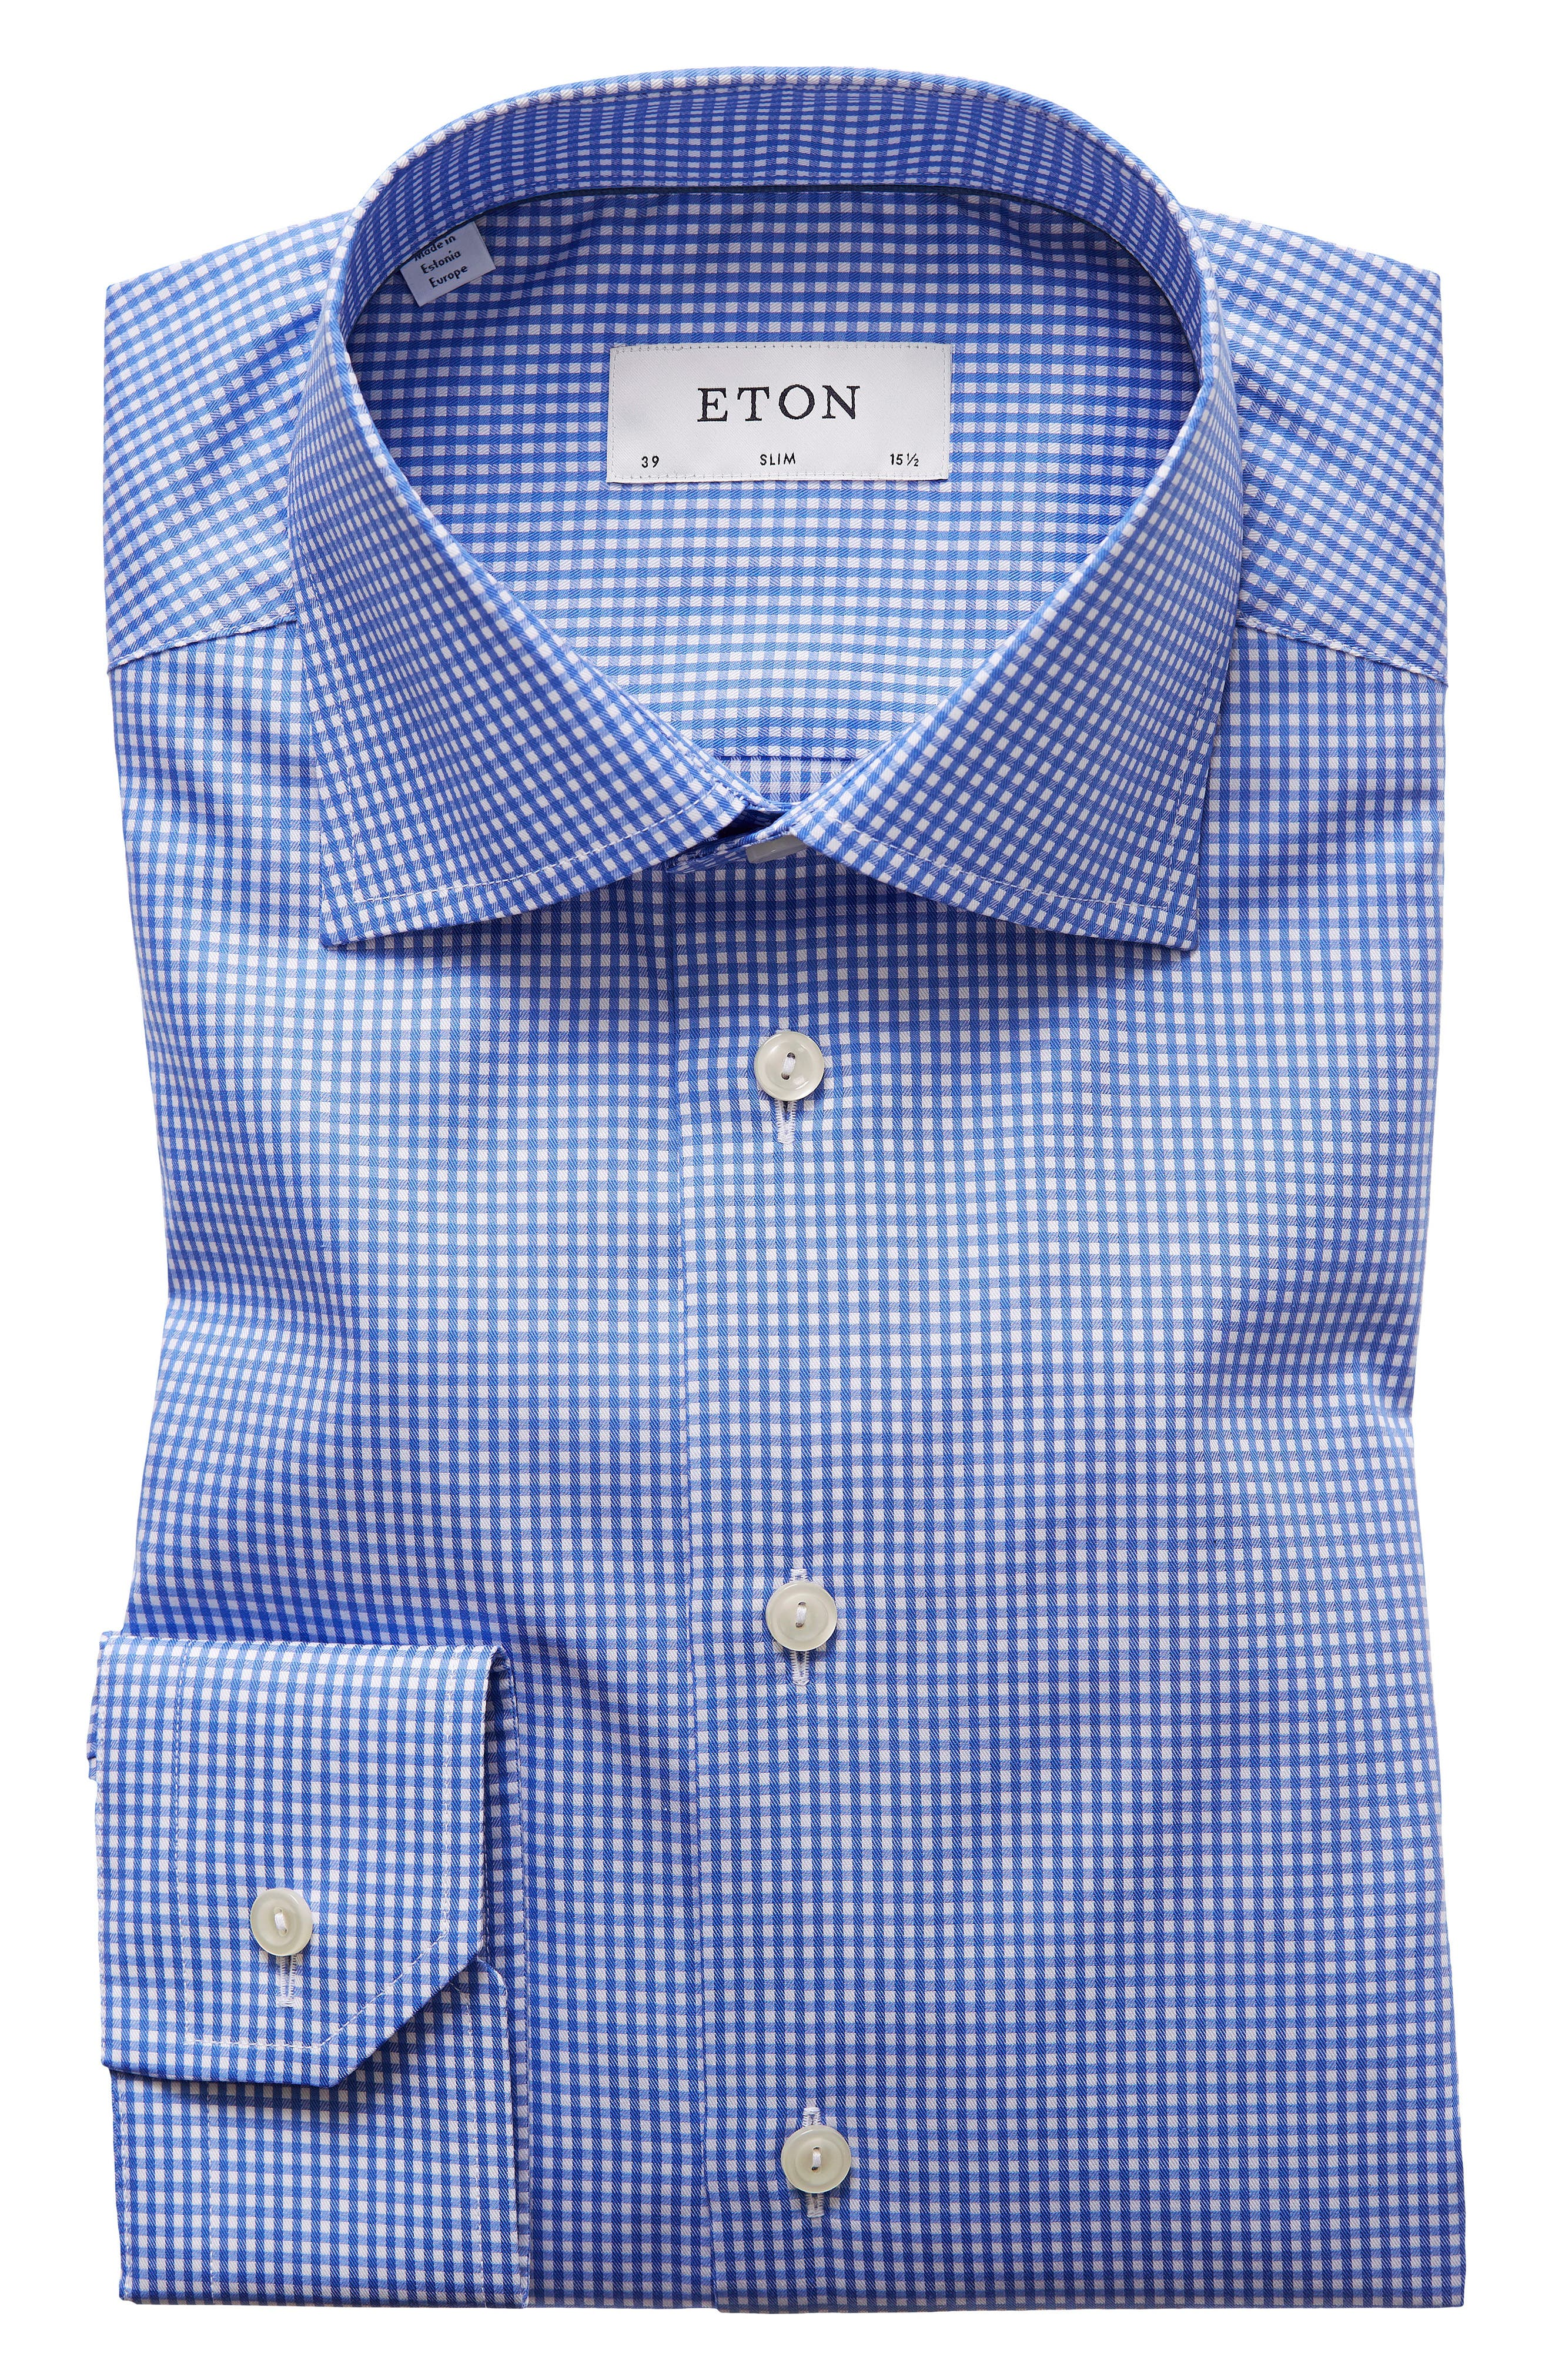 Extra Slim Fit Check Dress Shirt,                             Main thumbnail 1, color,                             BLUE/ WHITE